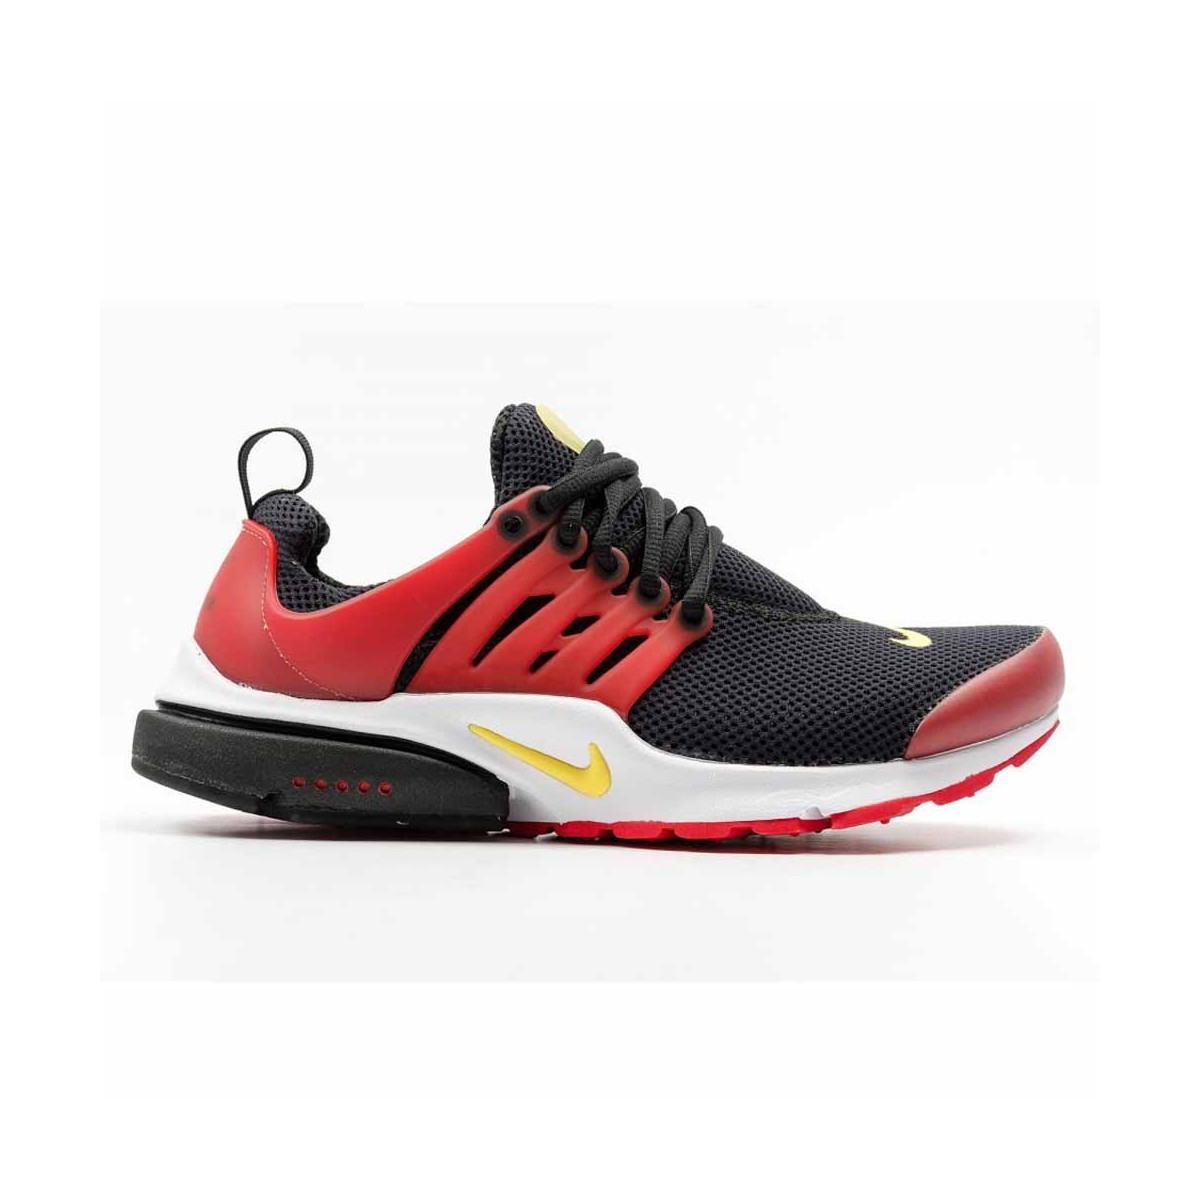 on sale 55d2d db759 SCARPE NIKE NC NIKE AIR PRESTO ESSENTIAL NERE E ROSSE AI 2016 848187-006